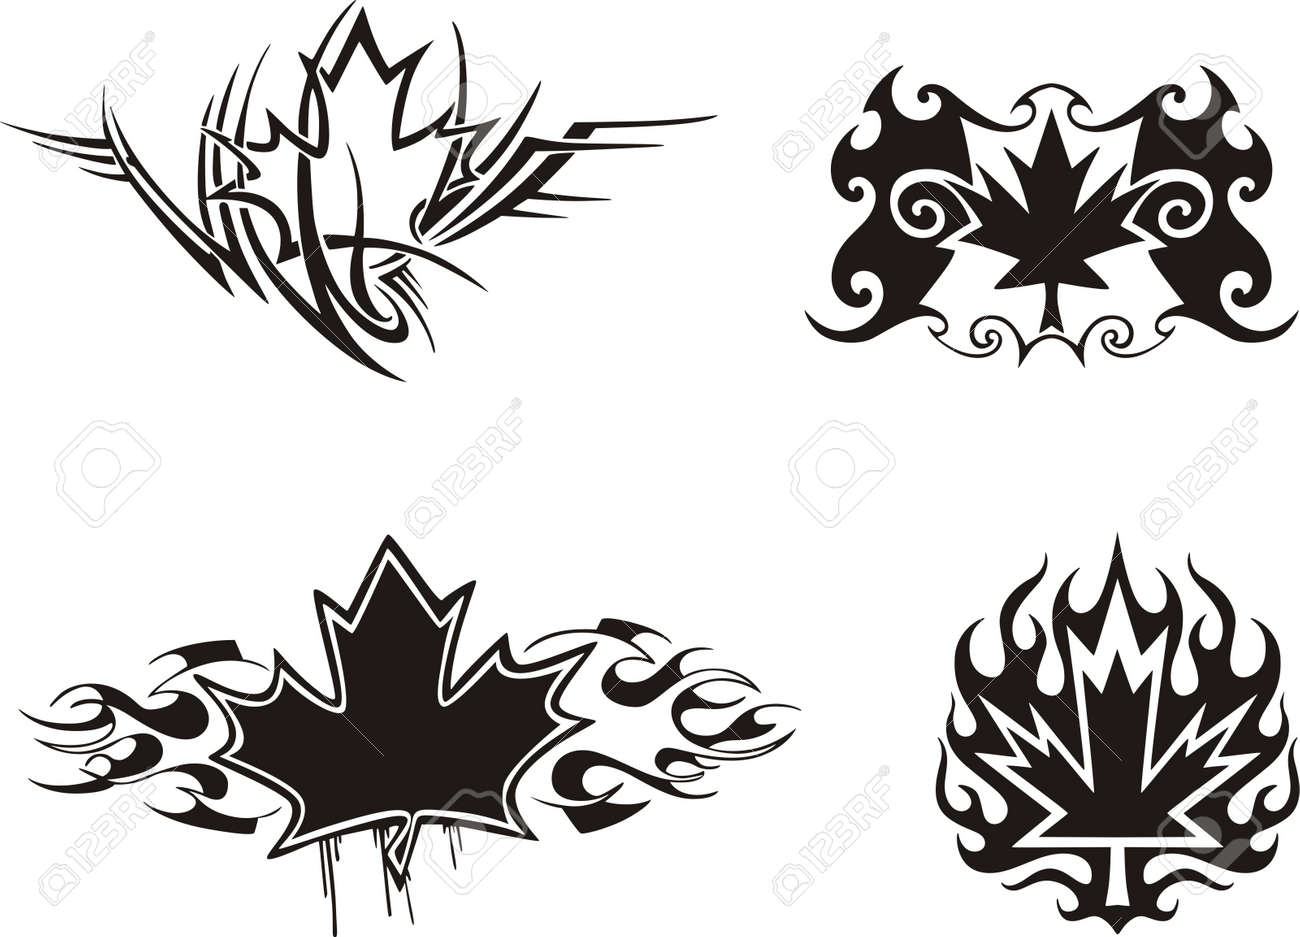 Four Canadian maple leaf flame & tattoo designs.  Vinyl-ready EPS Illustrations, black and white sketches. Stock Vector - 8432205